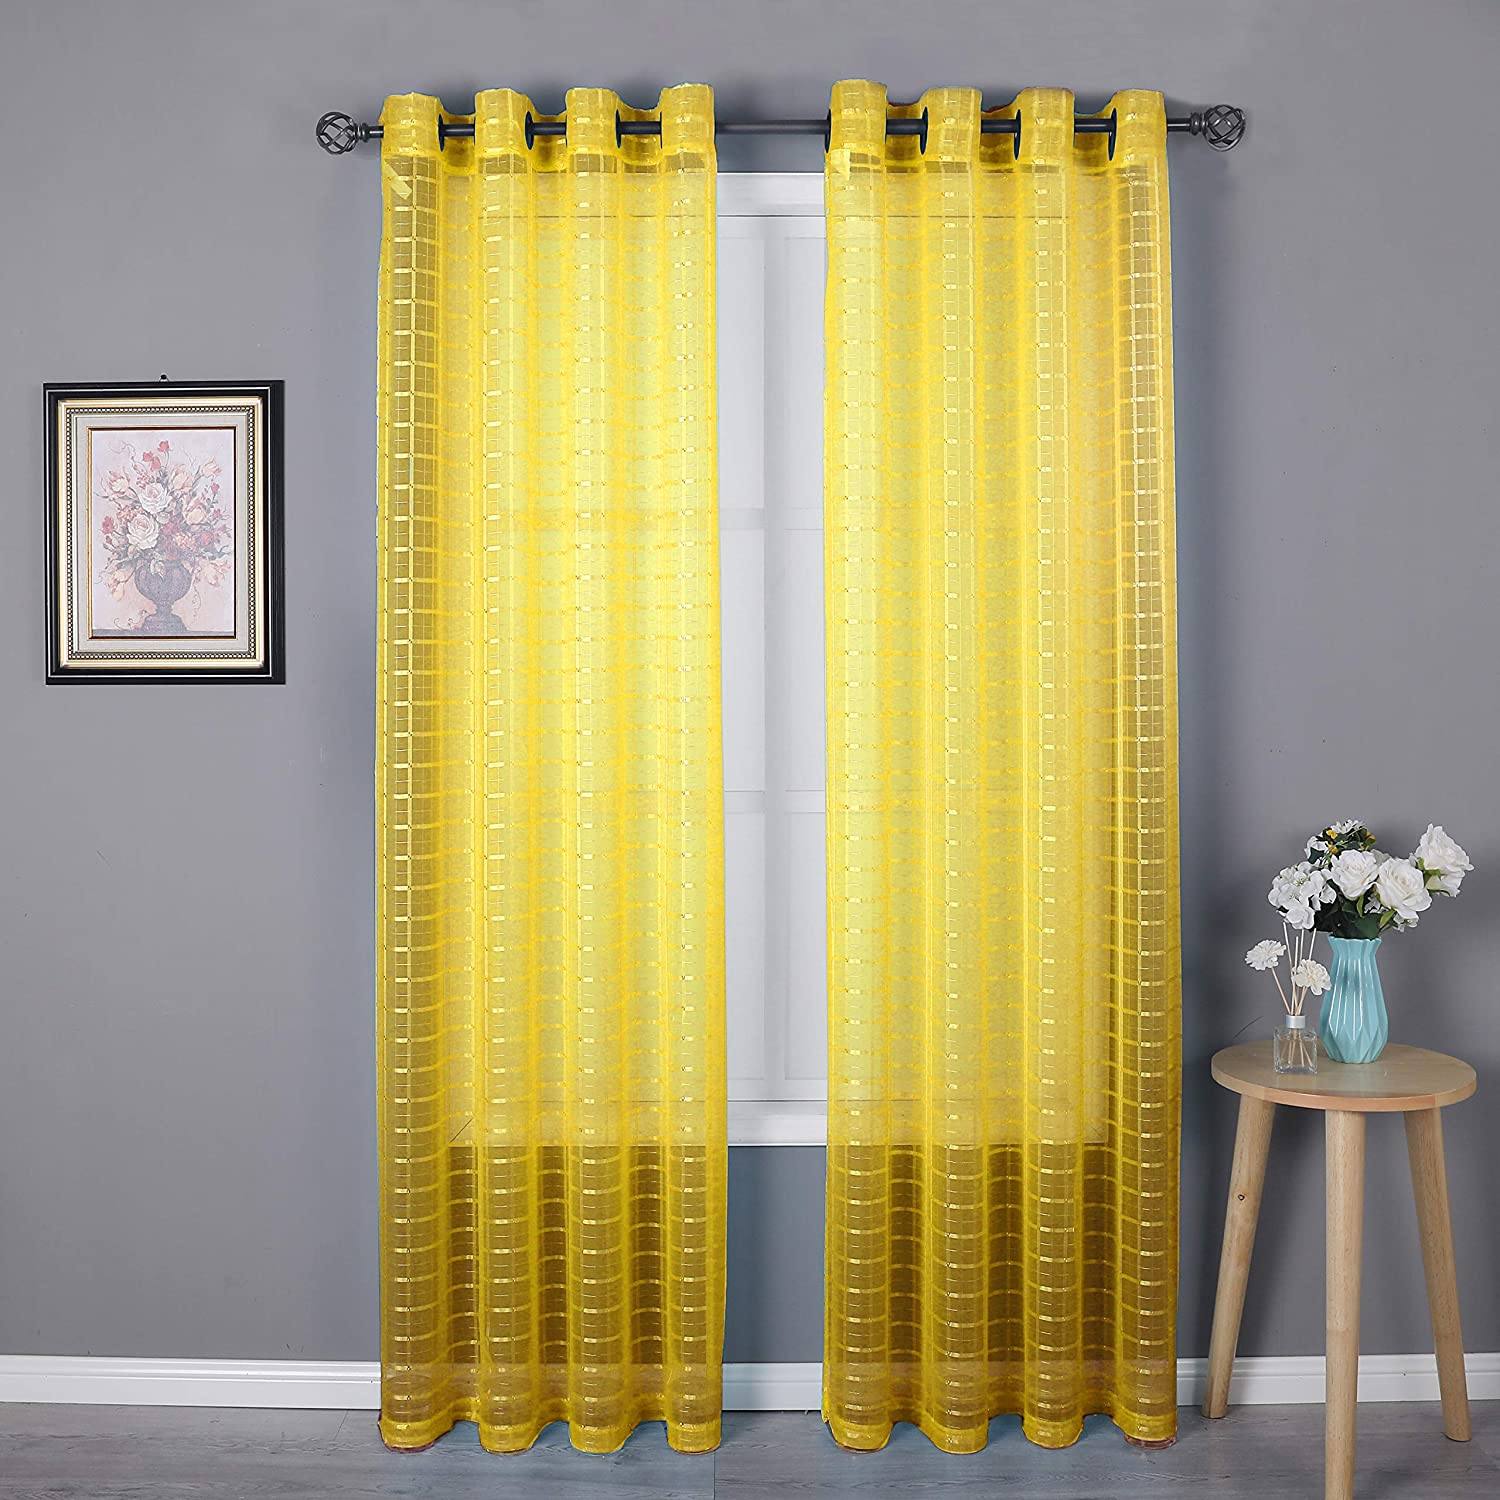 HEJEME Yellow Sheer Curtain Window Curtains (54 x 84inch) with Grommets - Single Layer Semi Sheer Plaid Lines Panels for Bedroom, Living Room & Dining Room, Set of 2 Panels (Yellow)